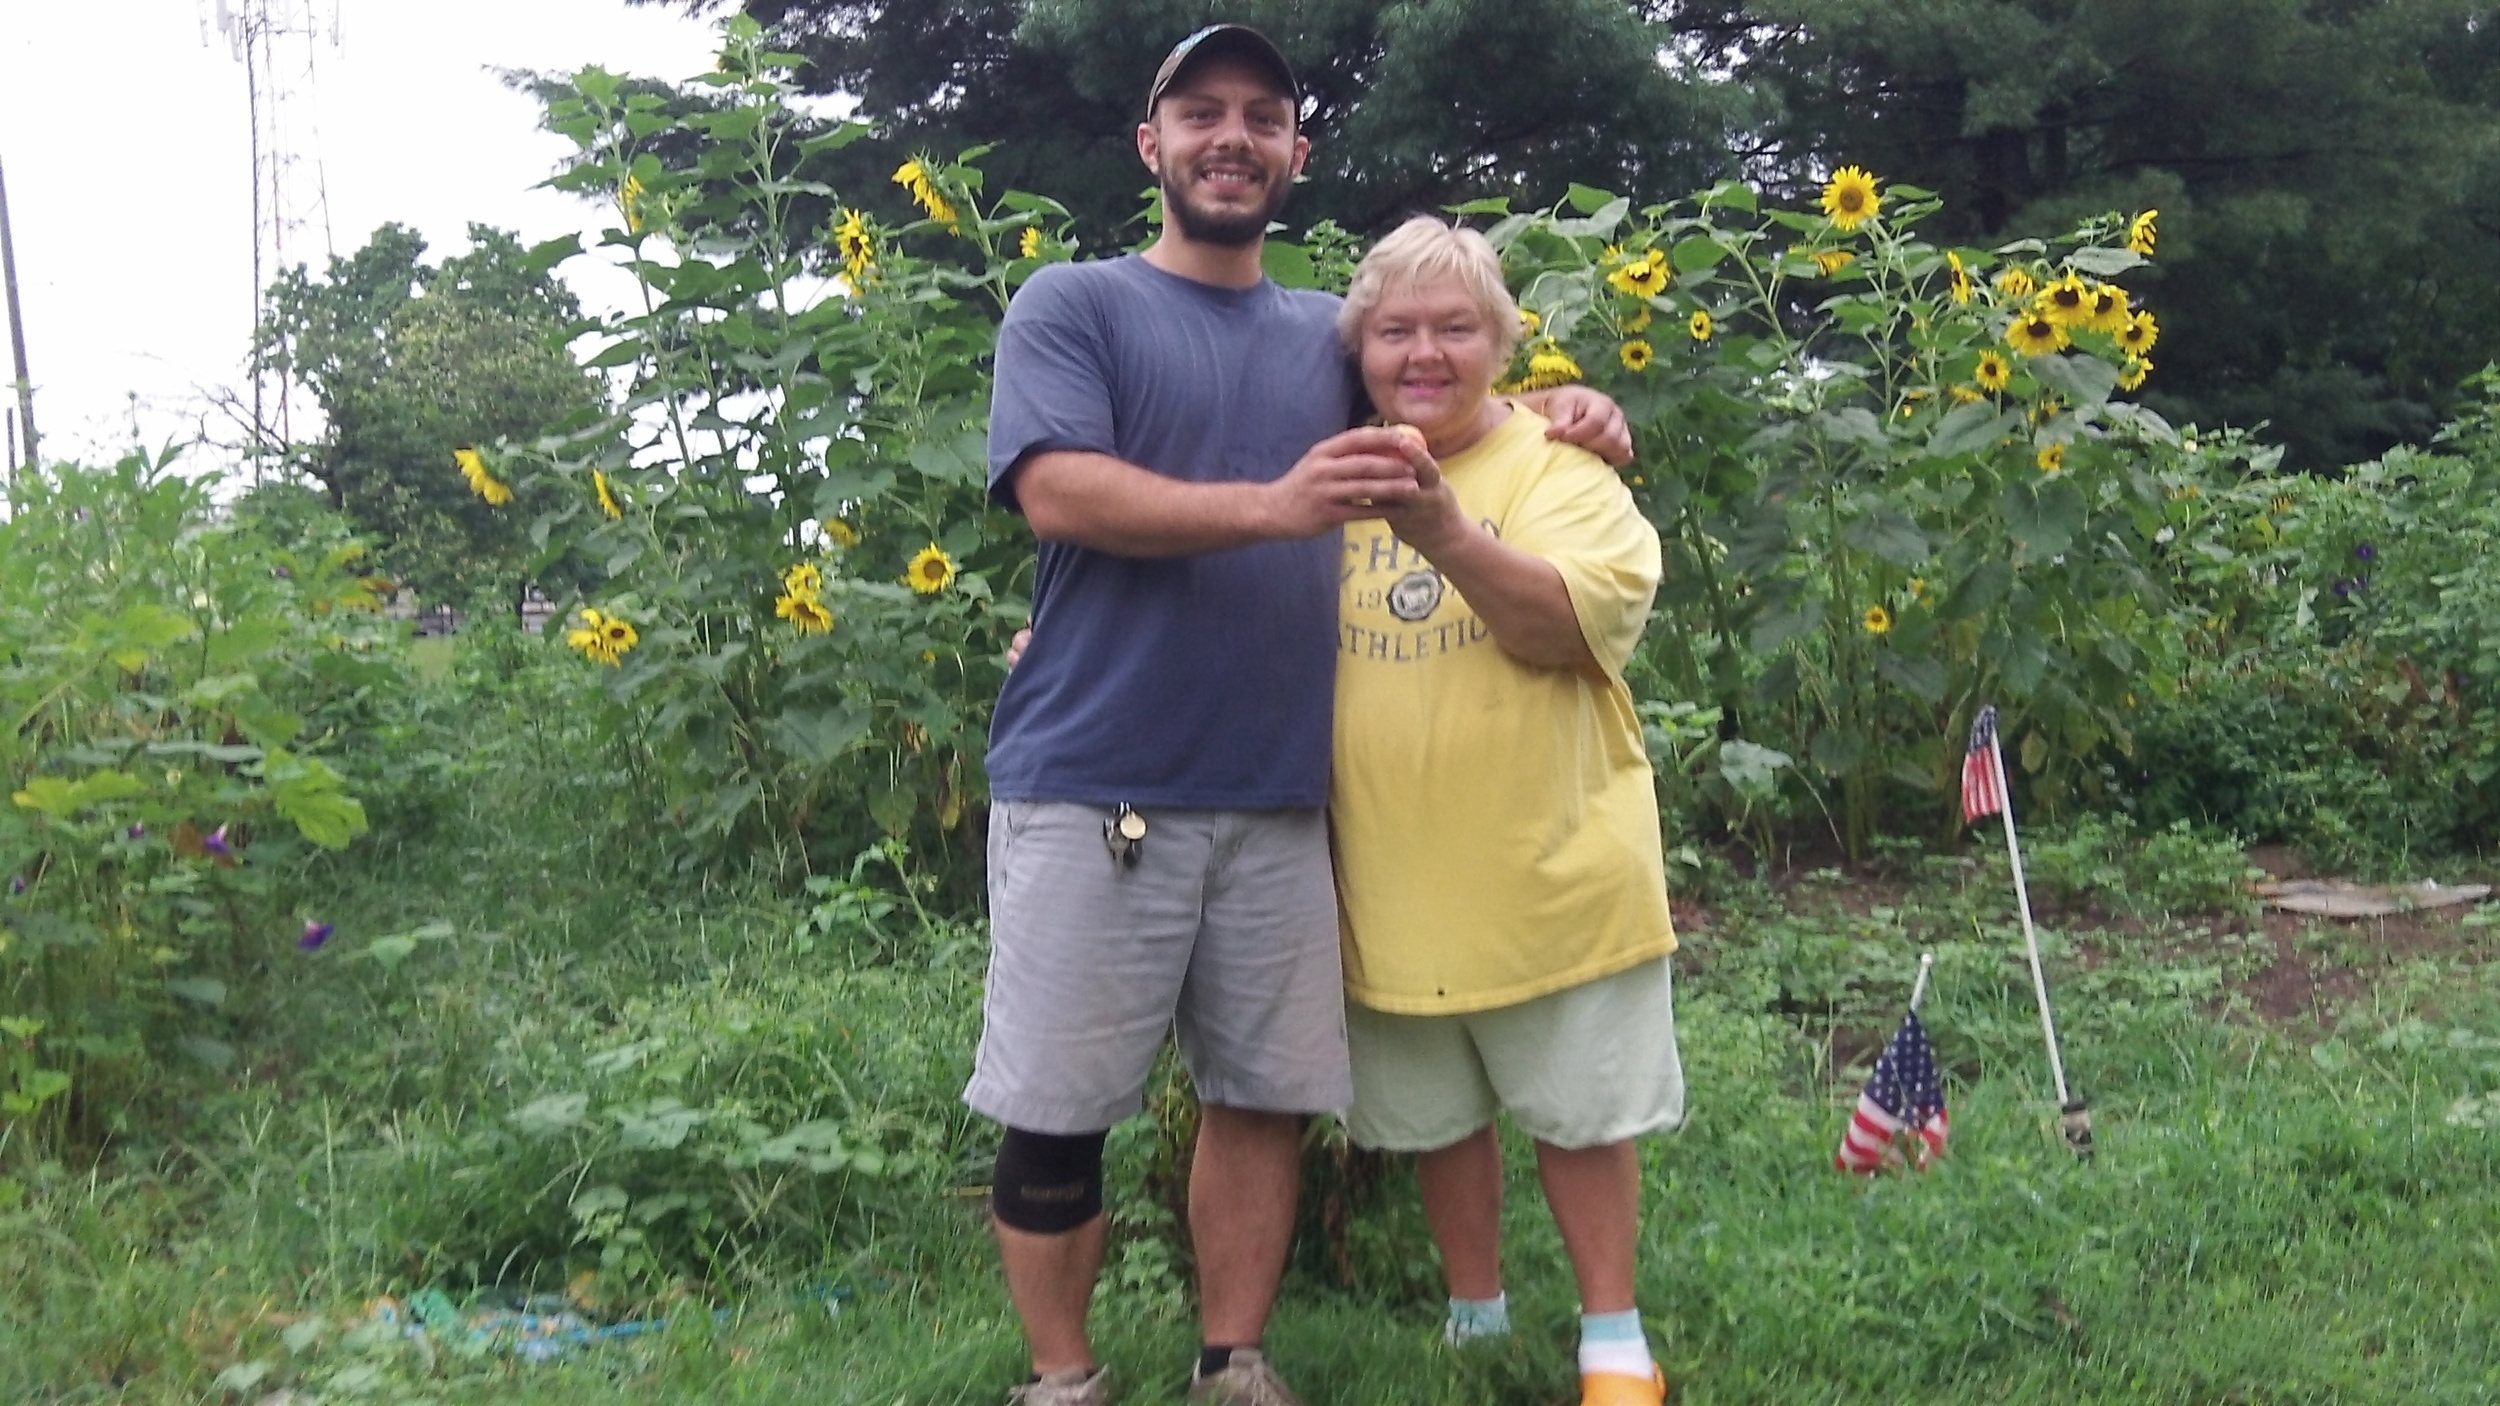 IMAGE DESCRIPTION:  Two people stand in front of a community garden and small sunflower patch. They each have an arm around the other, and with their other hands are together holding out an obscured piece of produce.